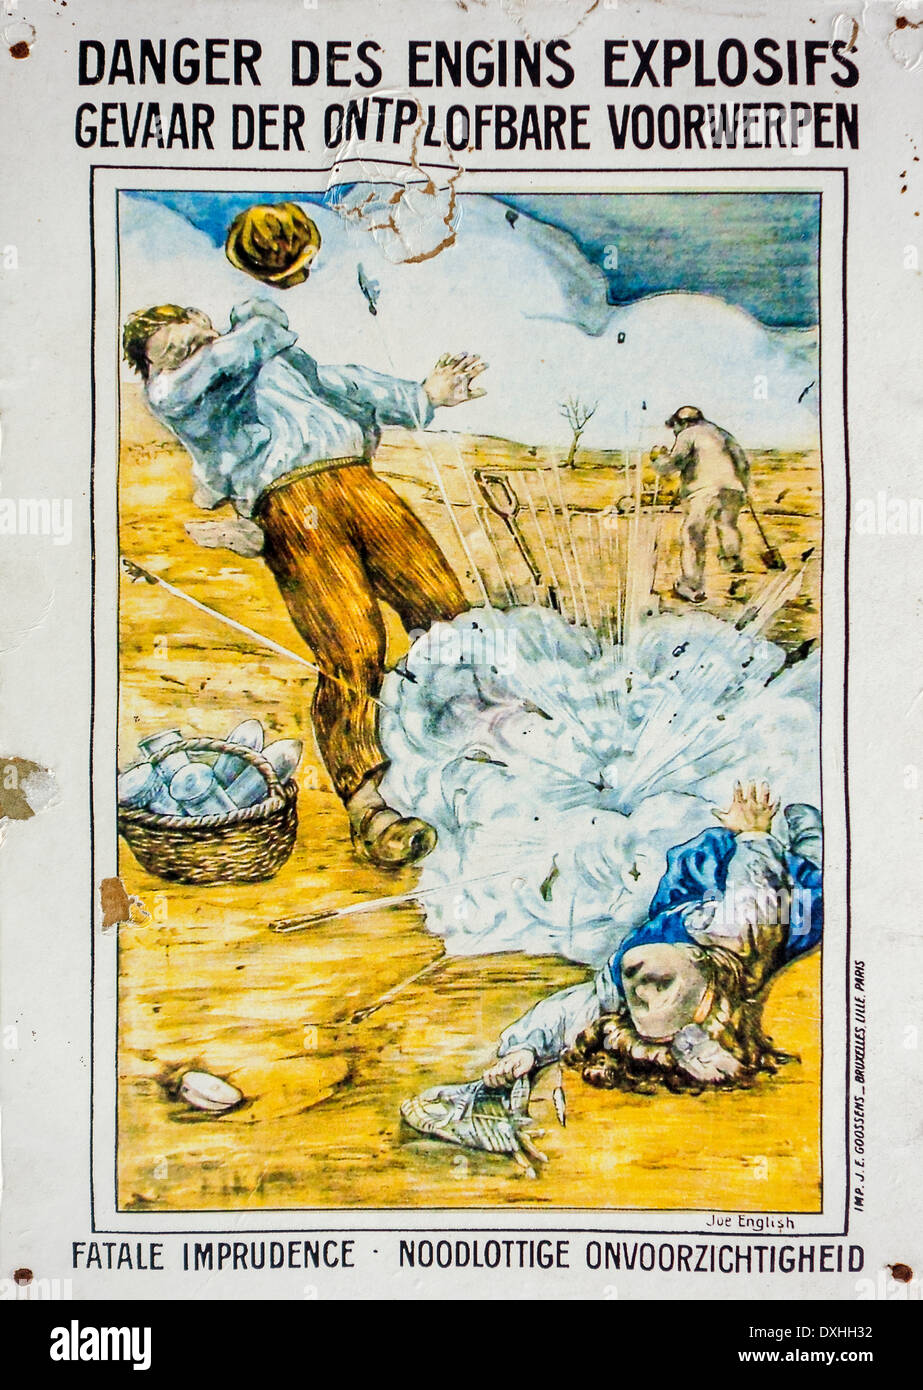 WWI poster warning civilians for danger of collecting World War One unexploded ordnance like bombs, shells, grenades in Belgium - Stock Image